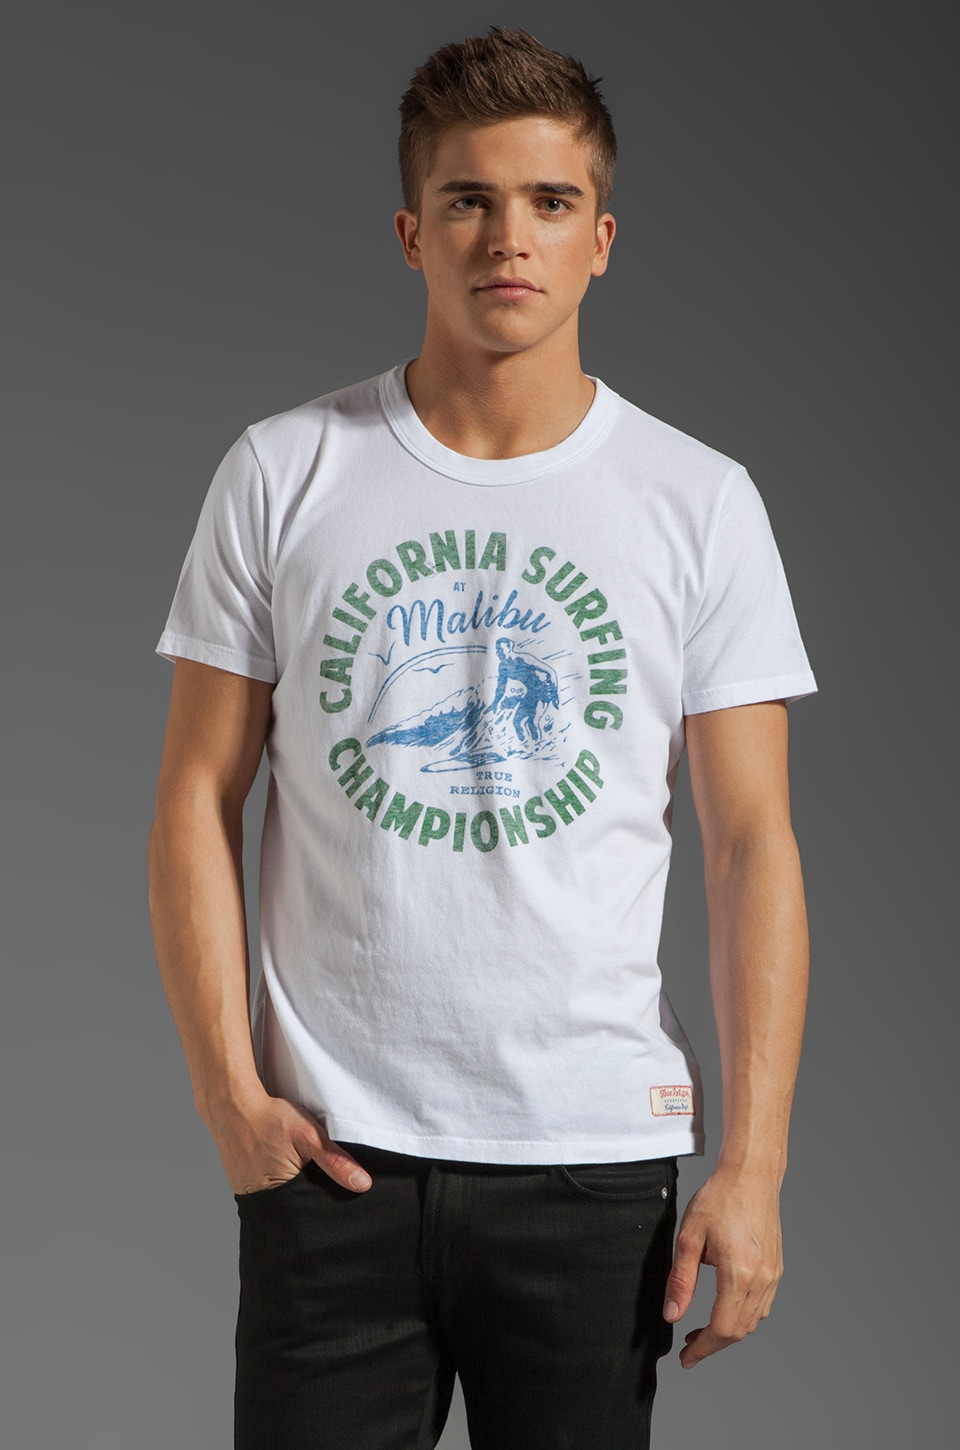 True Religion Cali Surfing Tee in White